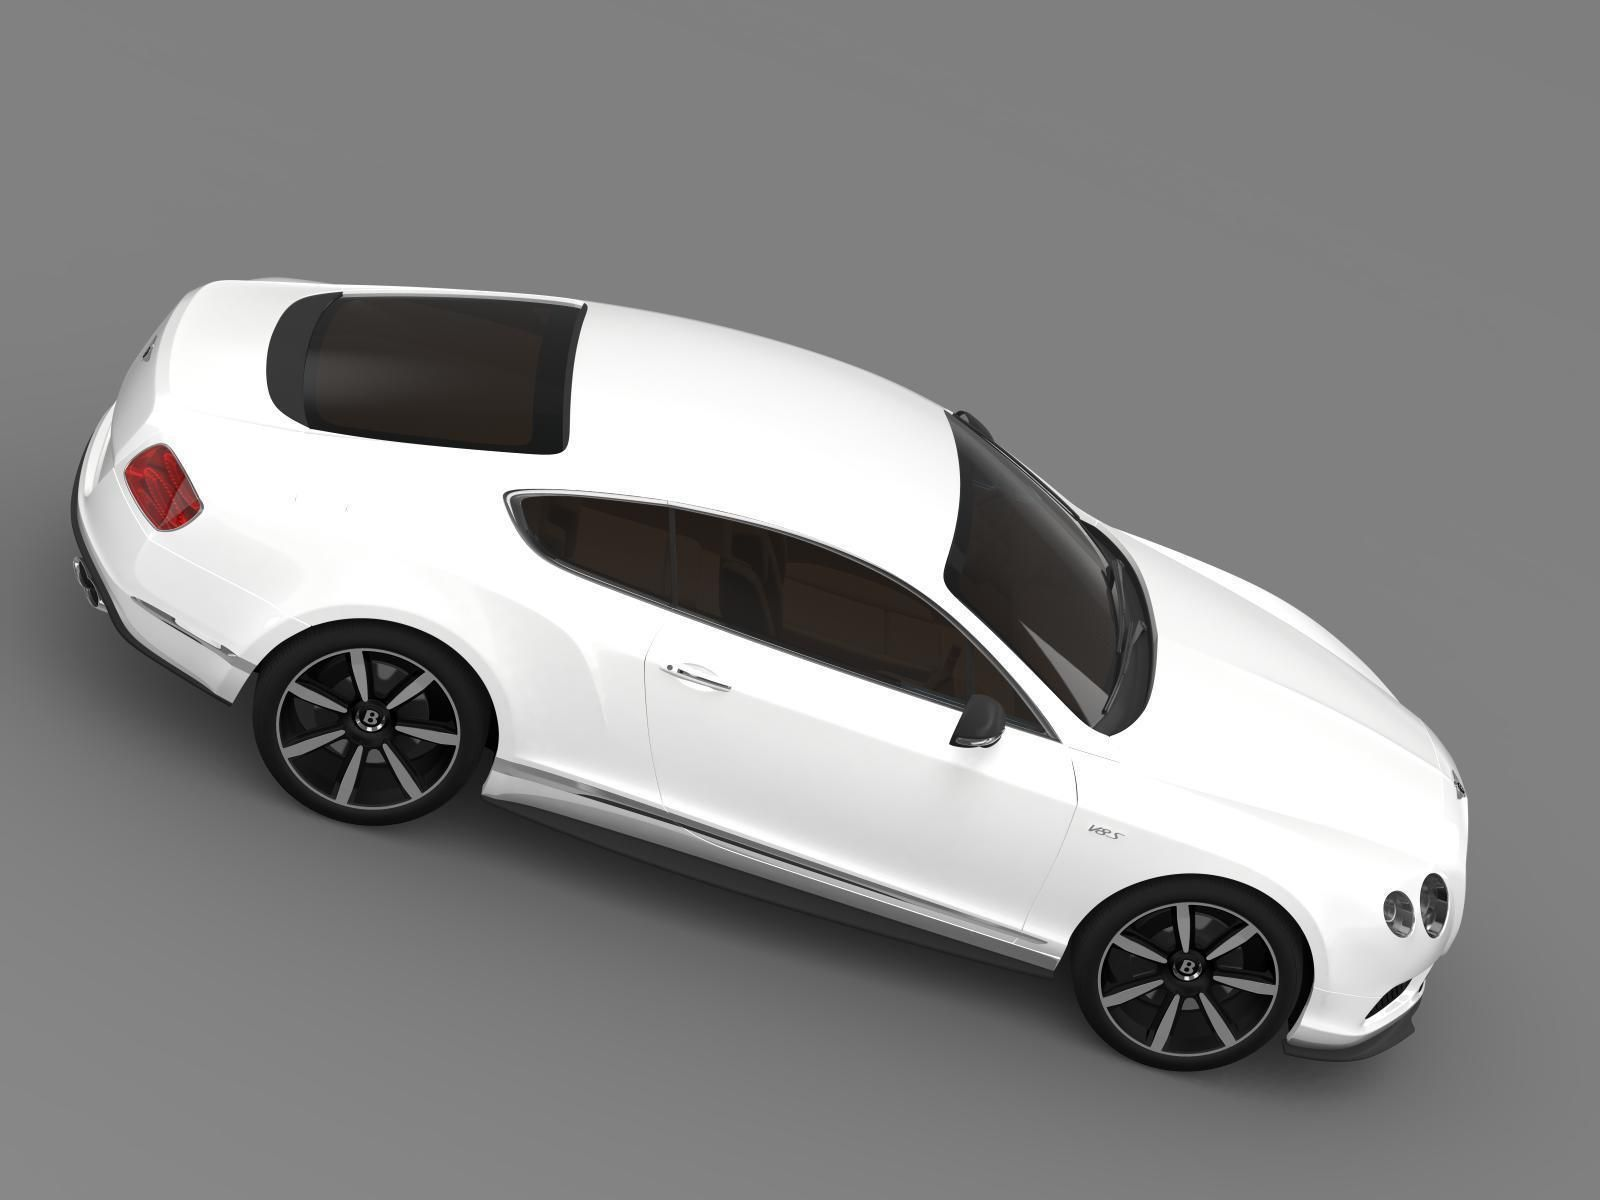 3D model Bentley Continental GT V8 S Coupe 2014 | CGTrader